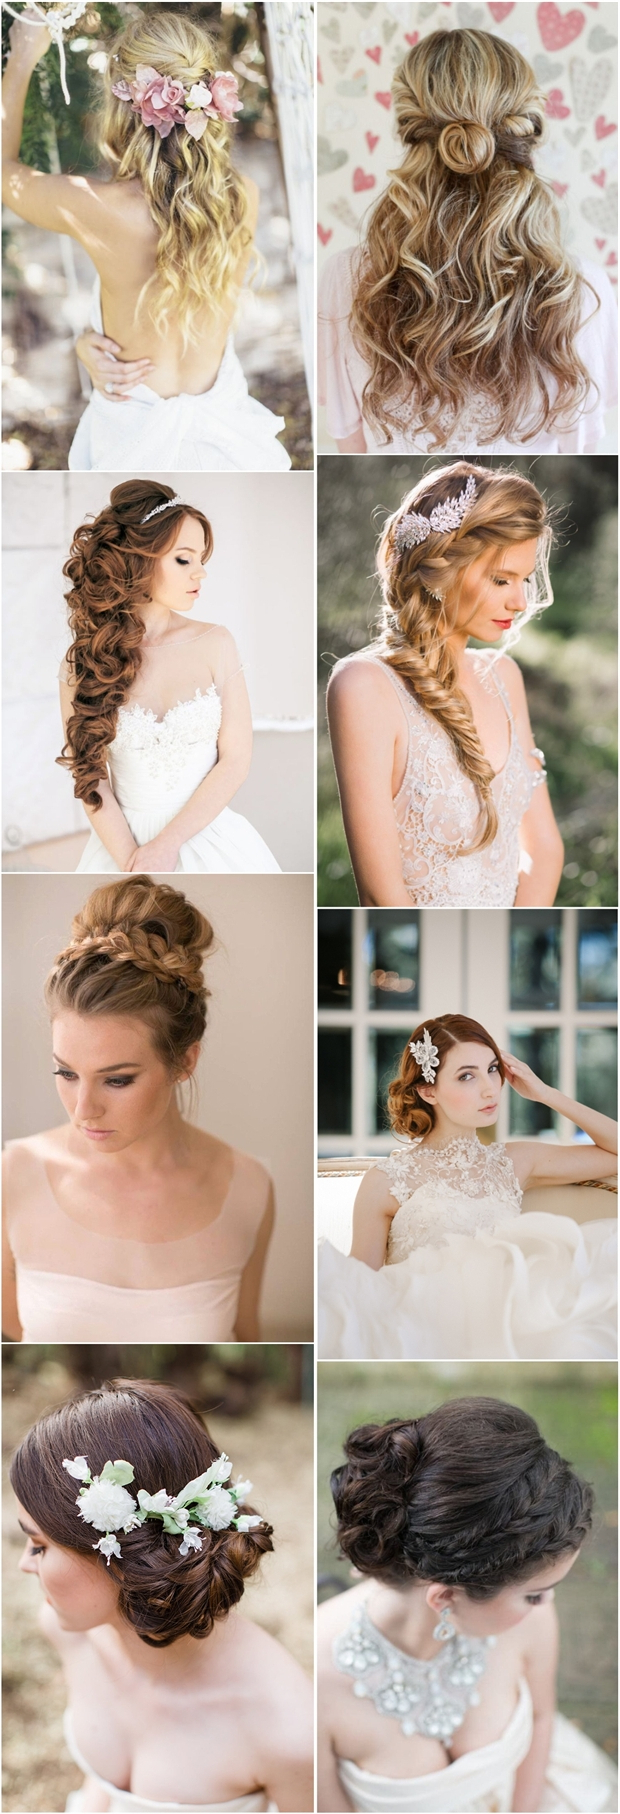 20 Fabulous Wedding Hairstyles For Every Bride (View 1 of 20)